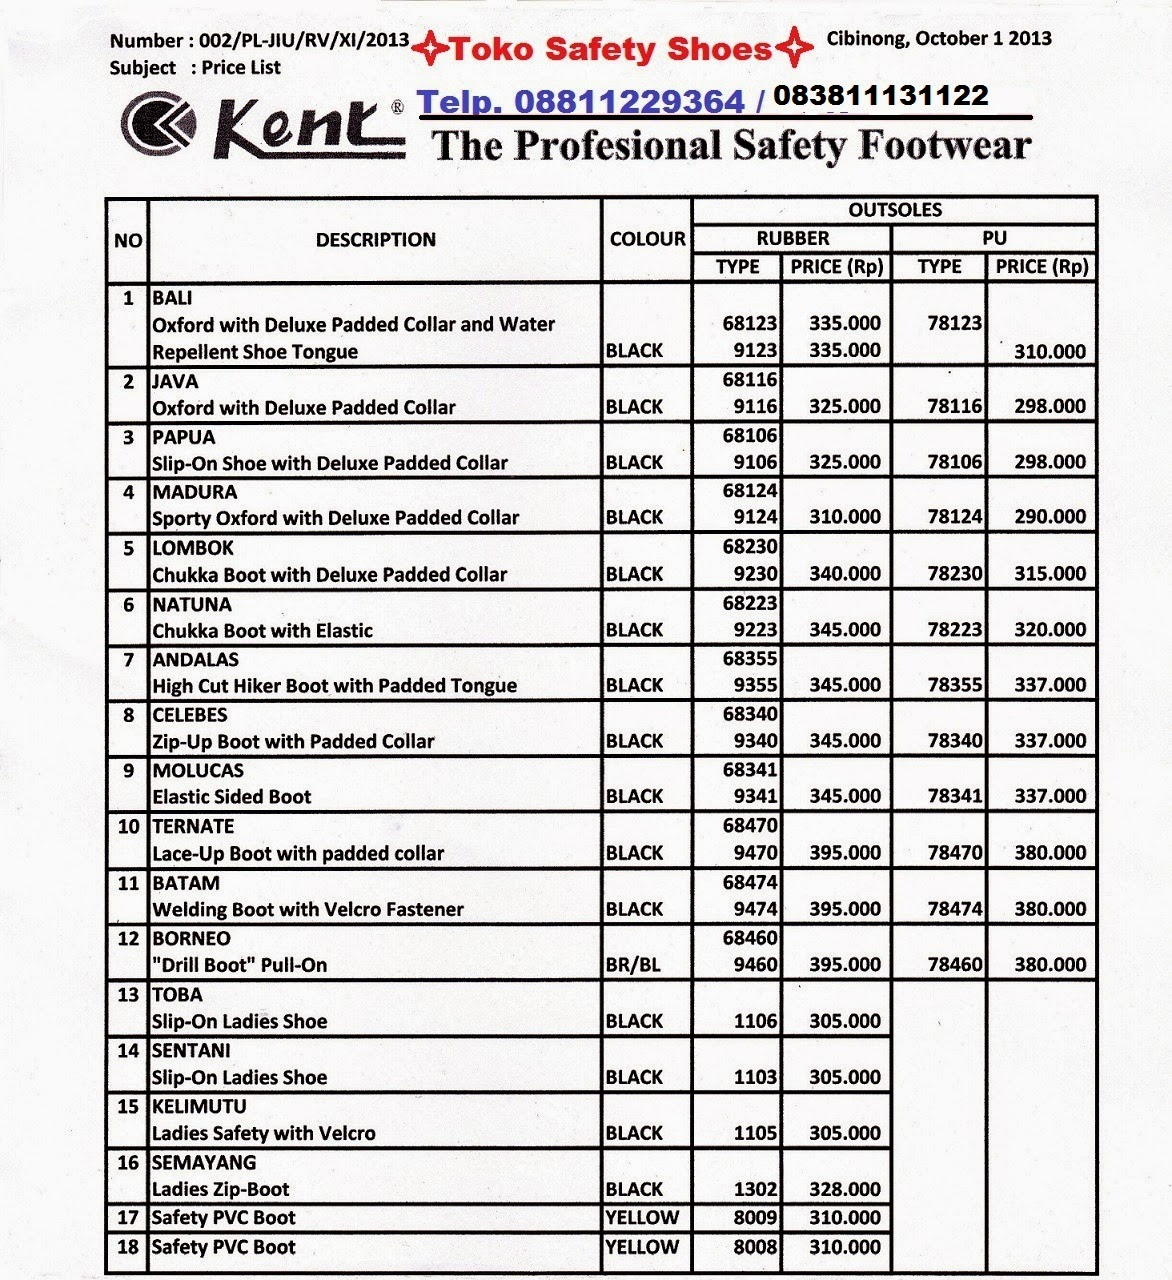 Kings Safety Shoes Price List